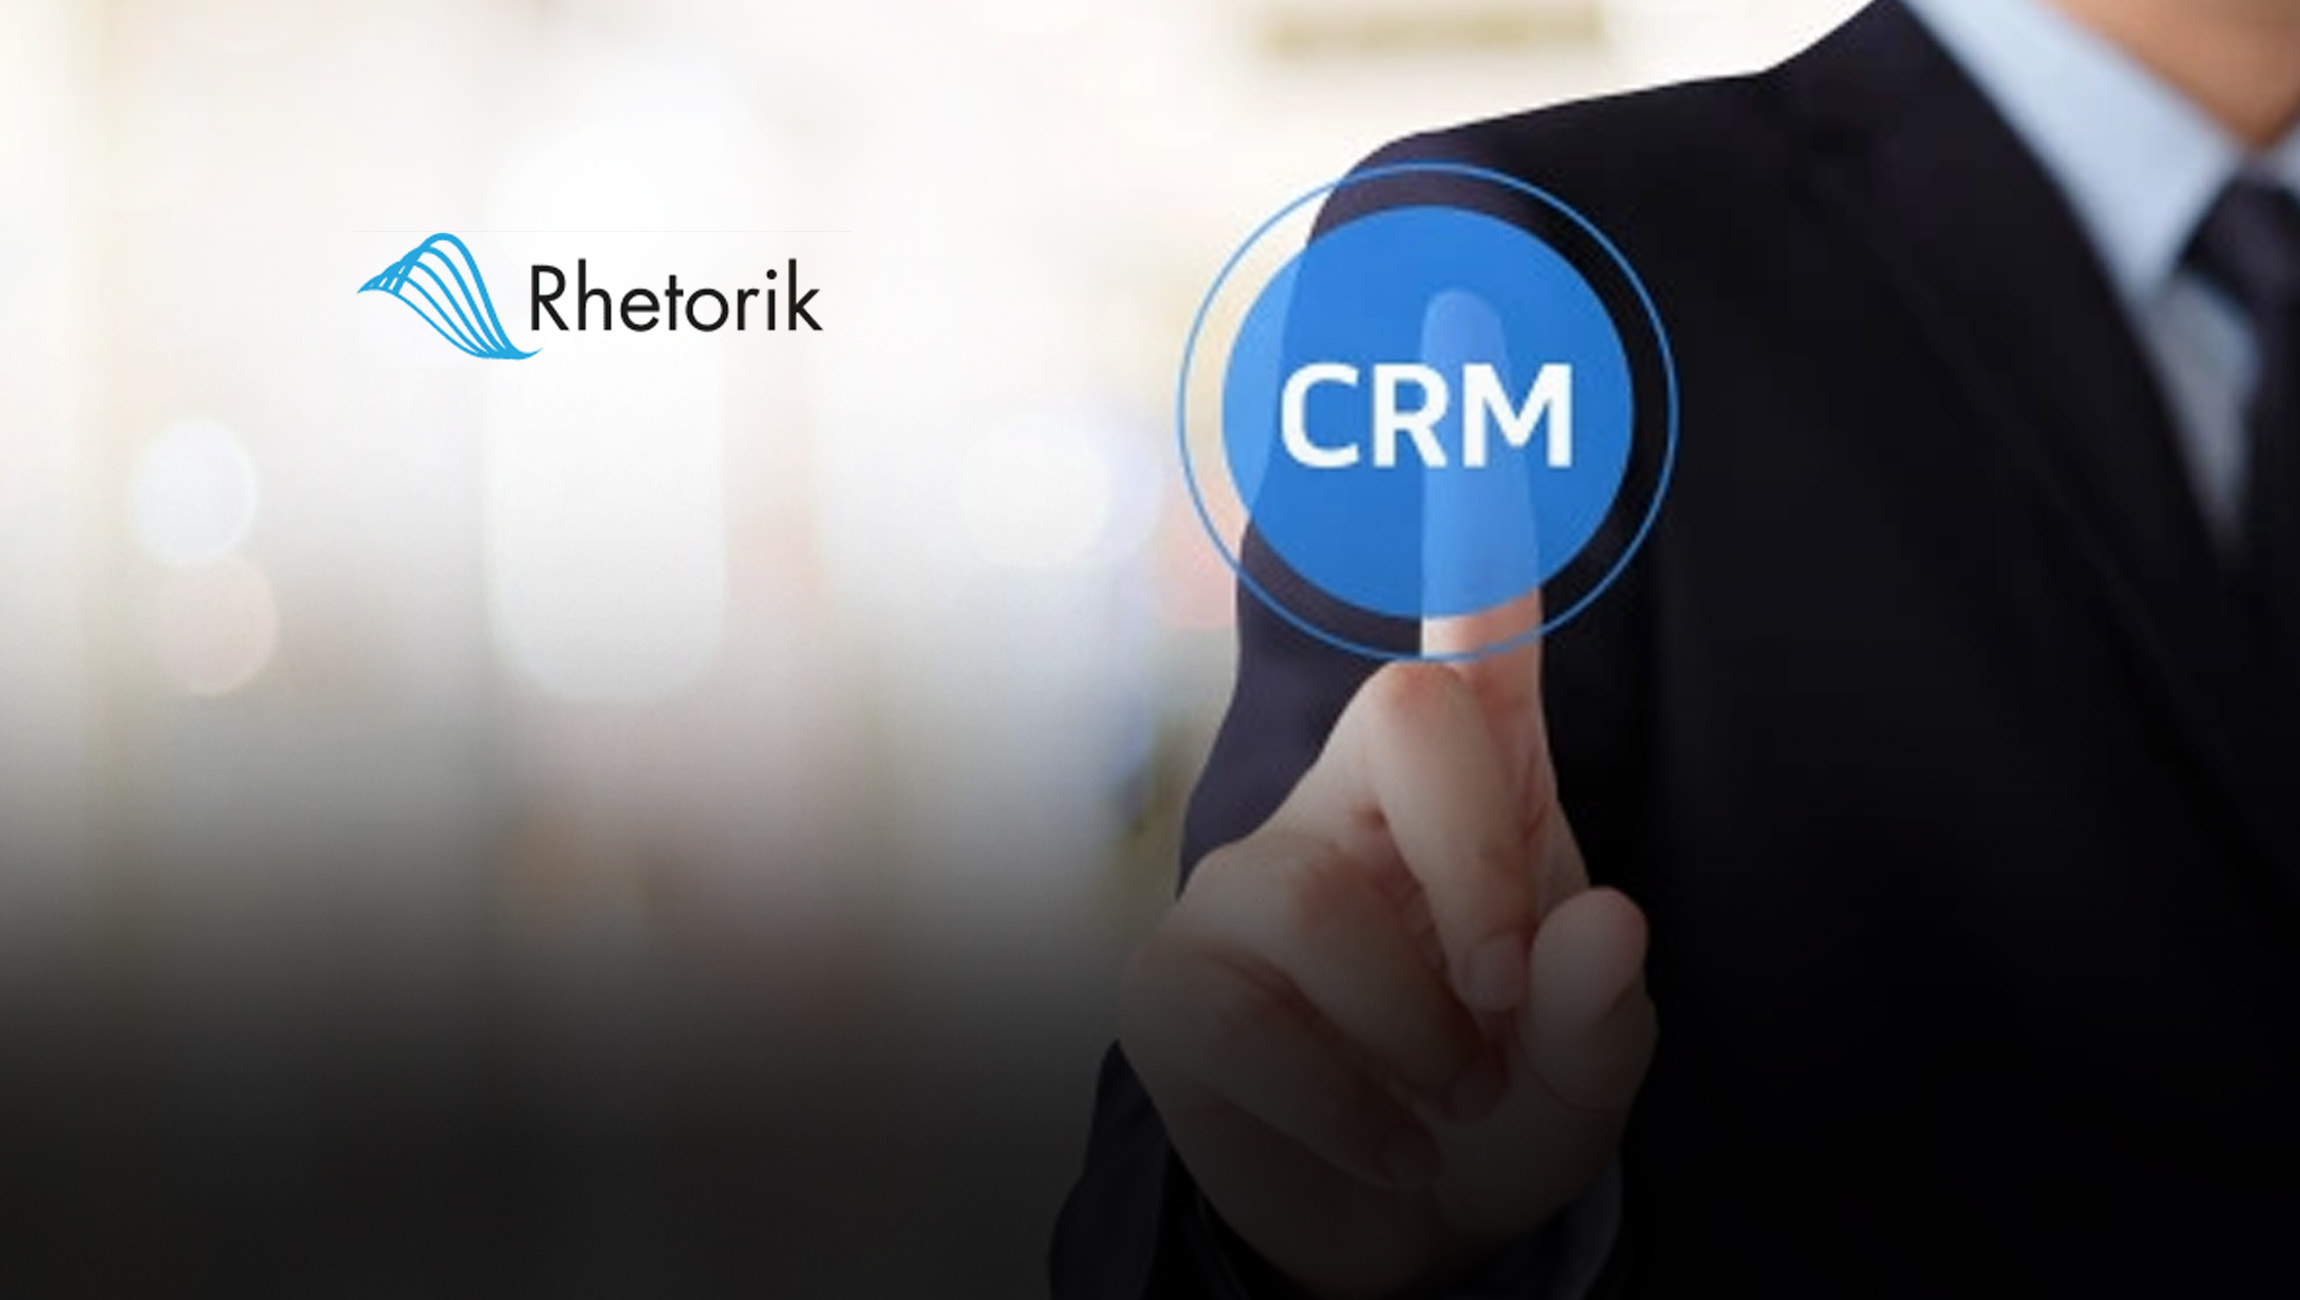 Leading International B2B technology intelligence now available on Marketing Automation and CRM platforms